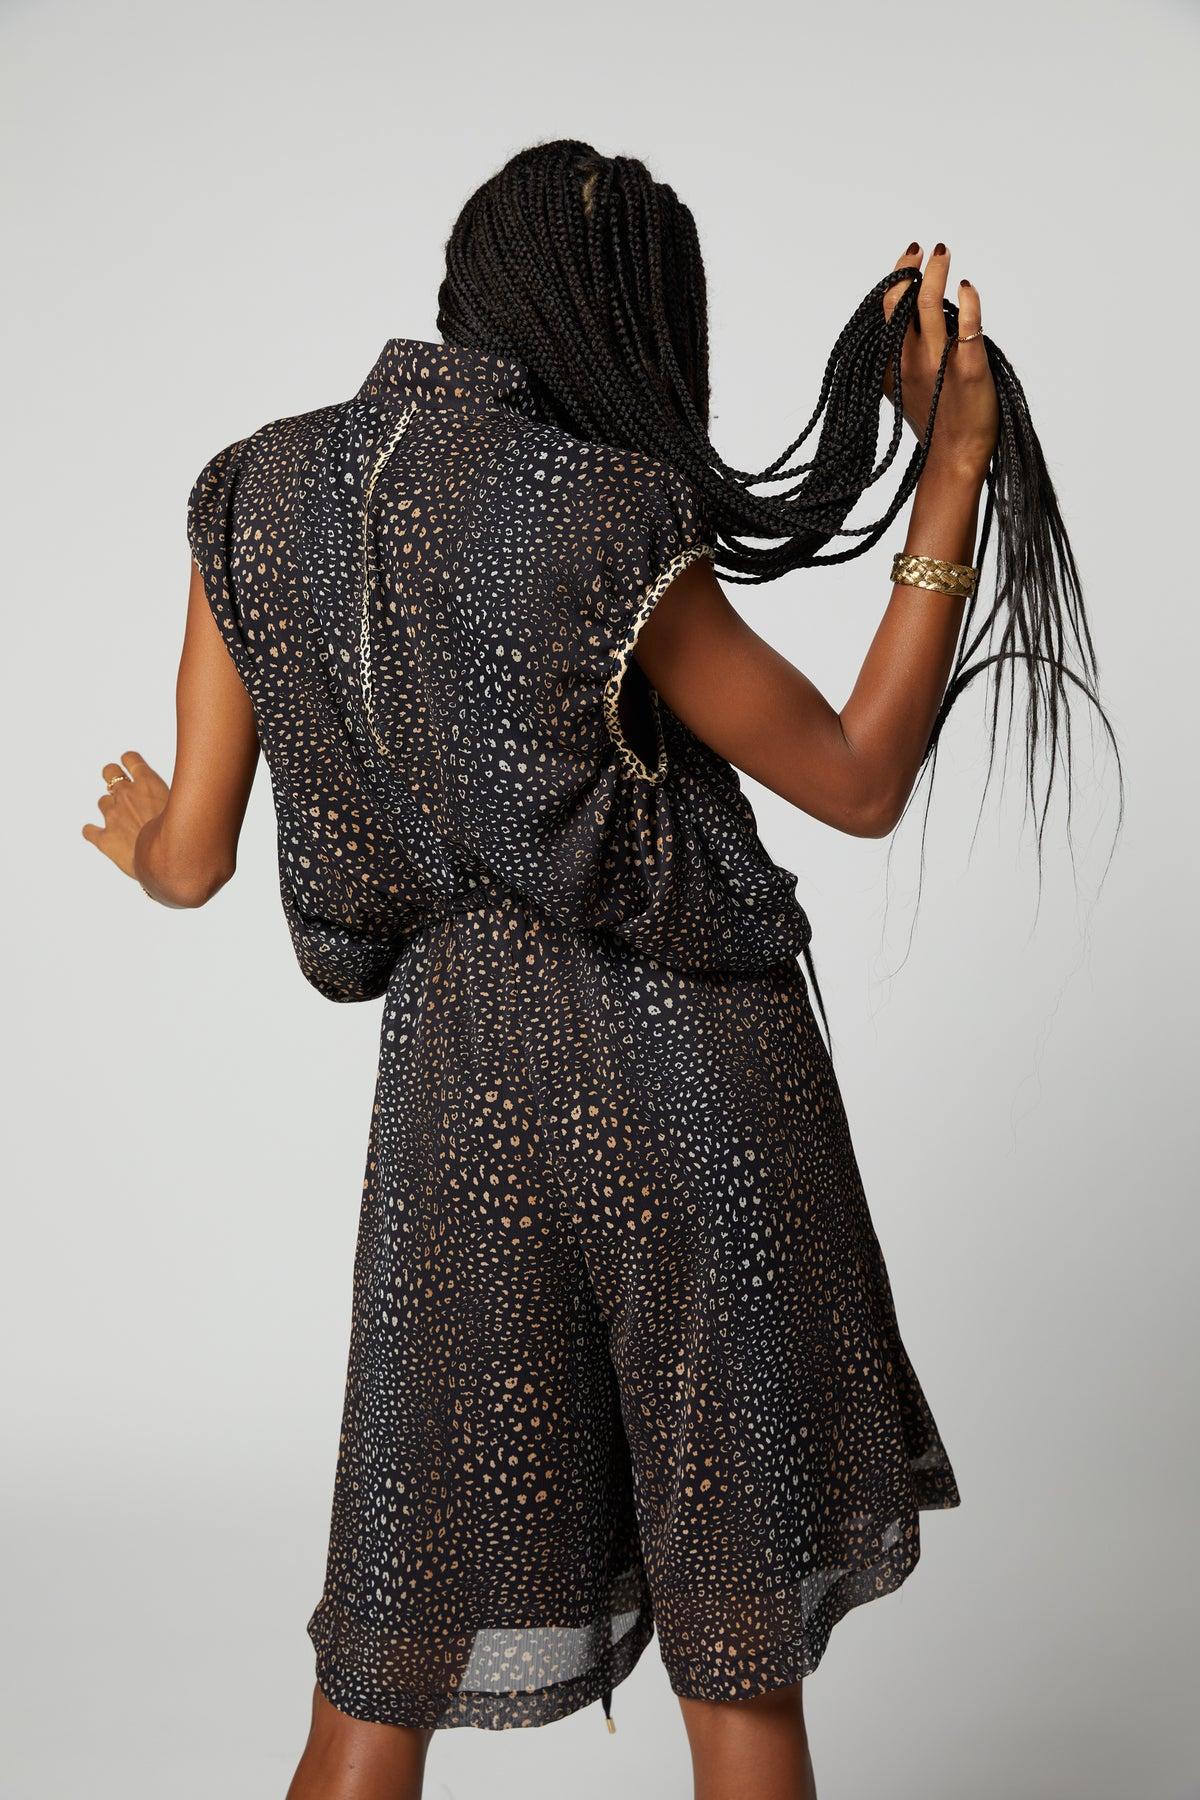 Goa jumpsuit in black leopard print